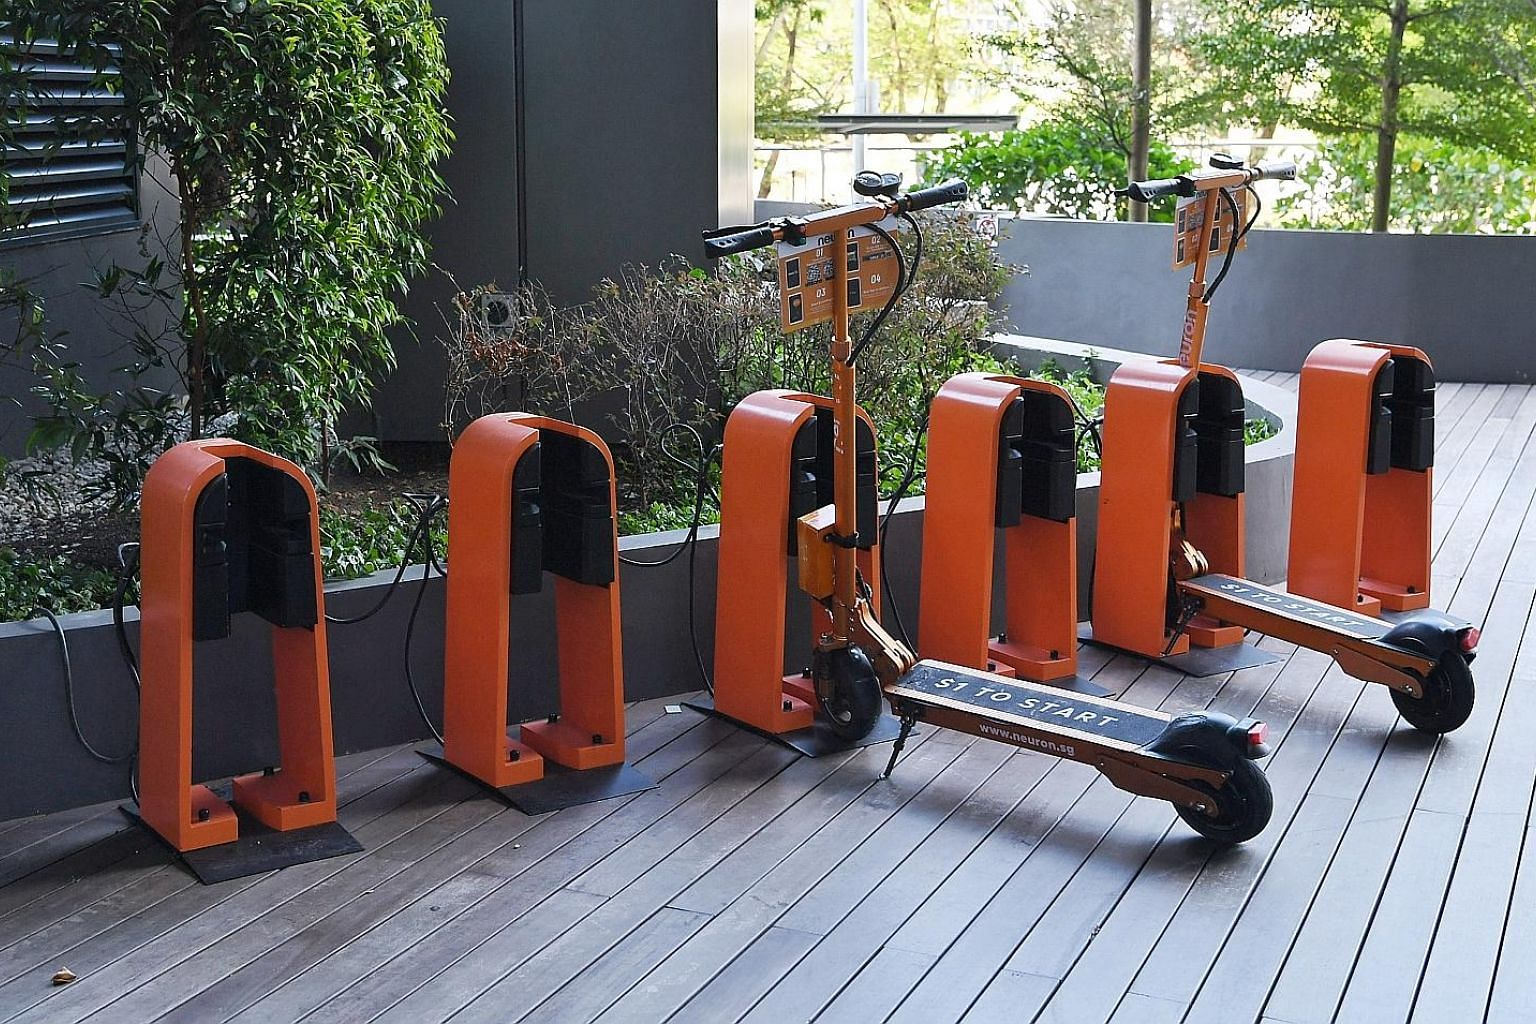 The Land Transport Authority said it had impounded 144 Neuron Mobility personal mobility devices as of Monday.